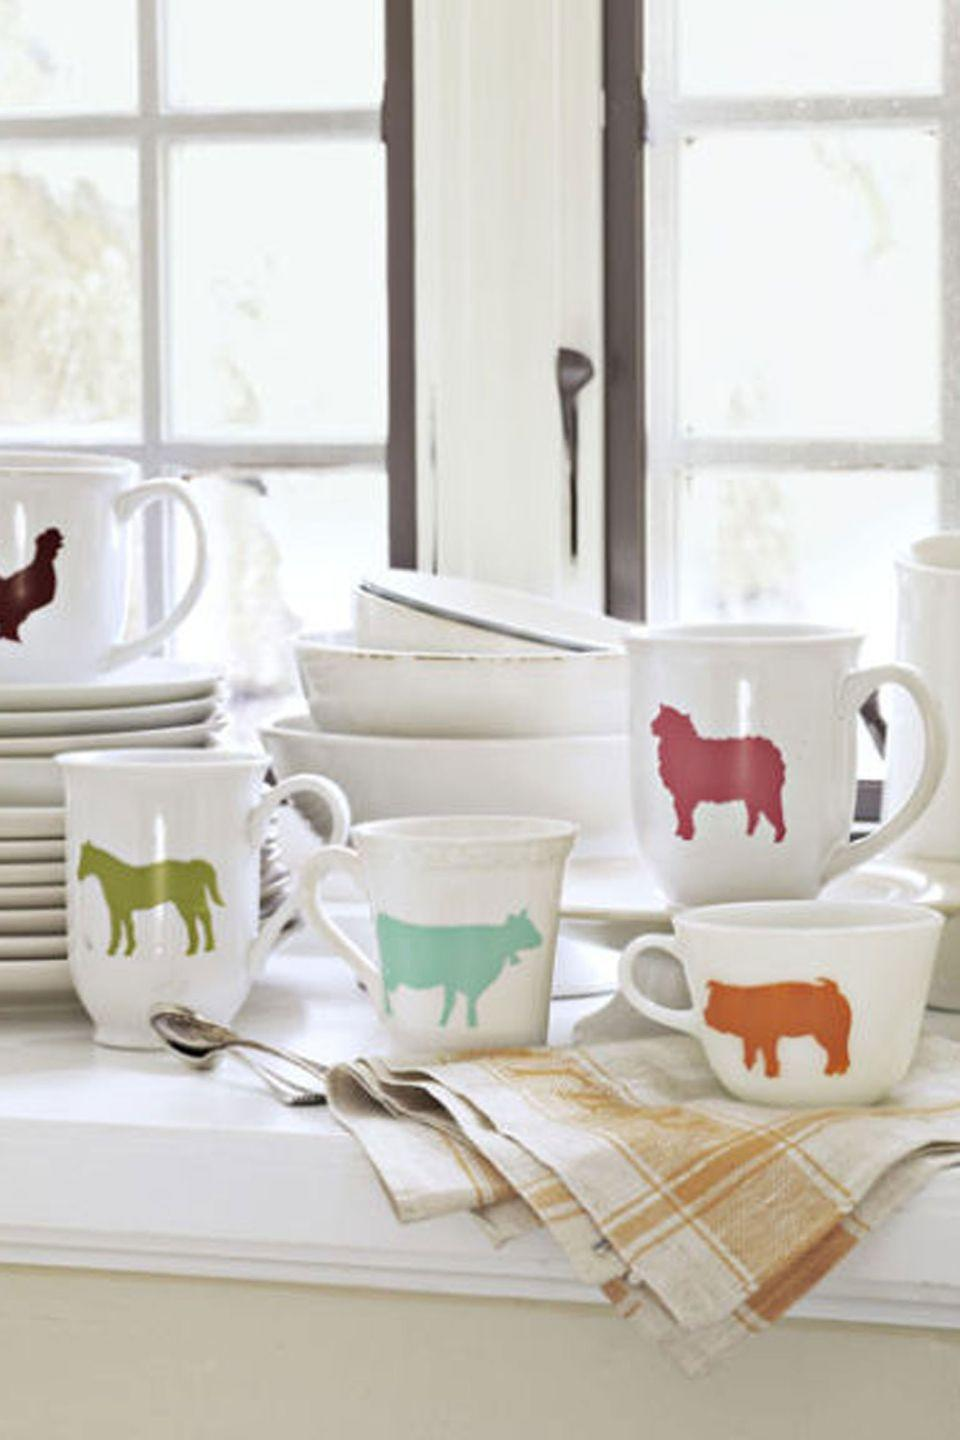 """<p>Look no further than the nearest pasture for inspiration to dress up plain dishware. To duplicate these mugs, print and cut out <a href=""""https://www.amazon.com/Fun-Farm-Animals-Stencils-Dover/dp/0486257592/?tag=syn-yahoo-20&ascsubtag=%5Bartid%7C10050.g.645%5Bsrc%7Cyahoo-us"""" rel=""""nofollow noopener"""" target=""""_blank"""" data-ylk=""""slk:animal shapes"""" class=""""link rapid-noclick-resp"""">animal shapes</a>. Place each shape atop a small piece of <a href=""""https://www.amazon.com/Tact-Covering-Self-Adhesive-Privacy-18-Inches/dp/B00D8GBO2G?tag=syn-yahoo-20&ascsubtag=%5Bartid%7C10050.g.645%5Bsrc%7Cyahoo-us"""" rel=""""nofollow noopener"""" target=""""_blank"""" data-ylk=""""slk:contact paper"""" class=""""link rapid-noclick-resp"""">contact paper</a> and outline it in pencil. Cut out with a <a href=""""https://www.amazon.com/X-ACTO-Craft-Tools-Knife-Safety/dp/B001KZH26Y?tag=syn-yahoo-20&ascsubtag=%5Bartid%7C10050.g.645%5Bsrc%7Cyahoo-us"""" rel=""""nofollow noopener"""" target=""""_blank"""" data-ylk=""""slk:craft knife"""" class=""""link rapid-noclick-resp"""">craft knife</a>; then discard the paper inside the outline. Peel away the backing and affix the stencil to a <a href=""""https://www.target.com/p/porcelain-coffee-mug-white-threshold-153/-/A-13891751"""" rel=""""nofollow noopener"""" target=""""_blank"""" data-ylk=""""slk:clean, dry mug"""" class=""""link rapid-noclick-resp"""">clean, dry mug</a>, making sure to center the image. Following the package directions, use a soft brush to fill in the outline with dishwasher-safe <a href=""""https://www.amazon.com/s/ref=nb_sb_noss?url=search-alias%3Darts-crafts&field-keywords=PermEnamel+paint&tag=syn-yahoo-20&ascsubtag=%5Bartid%7C10050.g.645%5Bsrc%7Cyahoo-us"""" rel=""""nofollow noopener"""" target=""""_blank"""" data-ylk=""""slk:PermEnamel paint"""" class=""""link rapid-noclick-resp"""">PermEnamel paint</a><em>;</em> let set for a few minutes. Carefully remove the contact paper, clean up any edges with a damp cotton swab, and allow the paint to cure for 10 days.<br></p><p><strong><a class=""""link rapid-noclick-resp"""" href=""""https://www.target.com/p/por"""